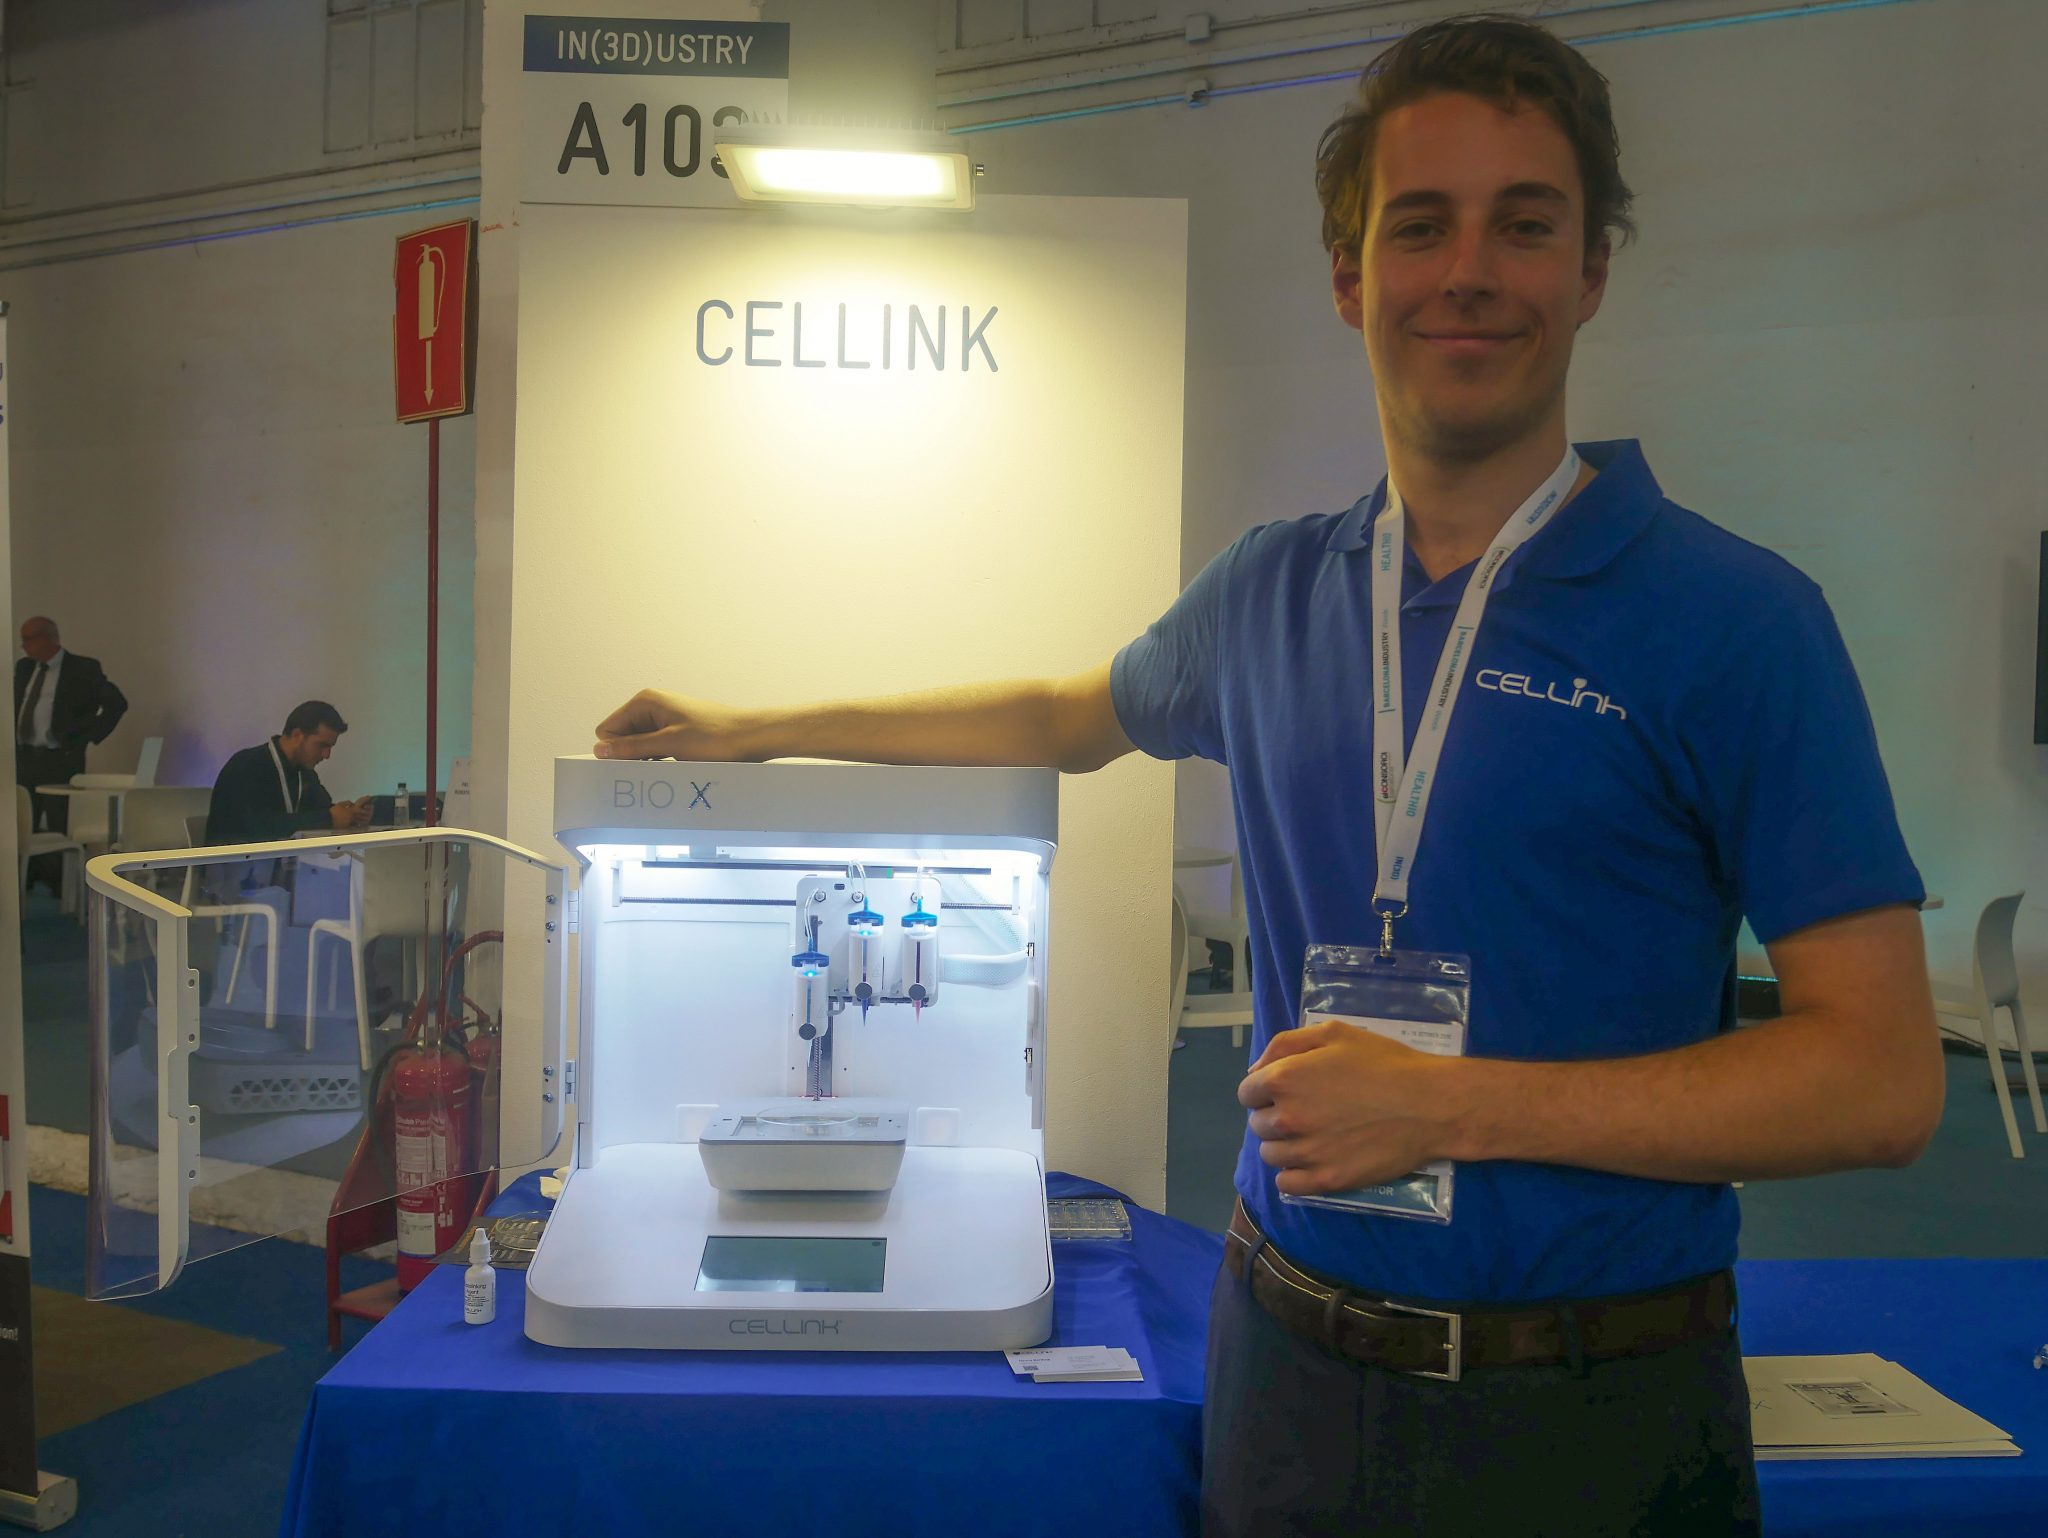 Joris van Aken, an Application Engineer at CELLINK next to the BIO X 3D printer. Photo by Tia Vialva.